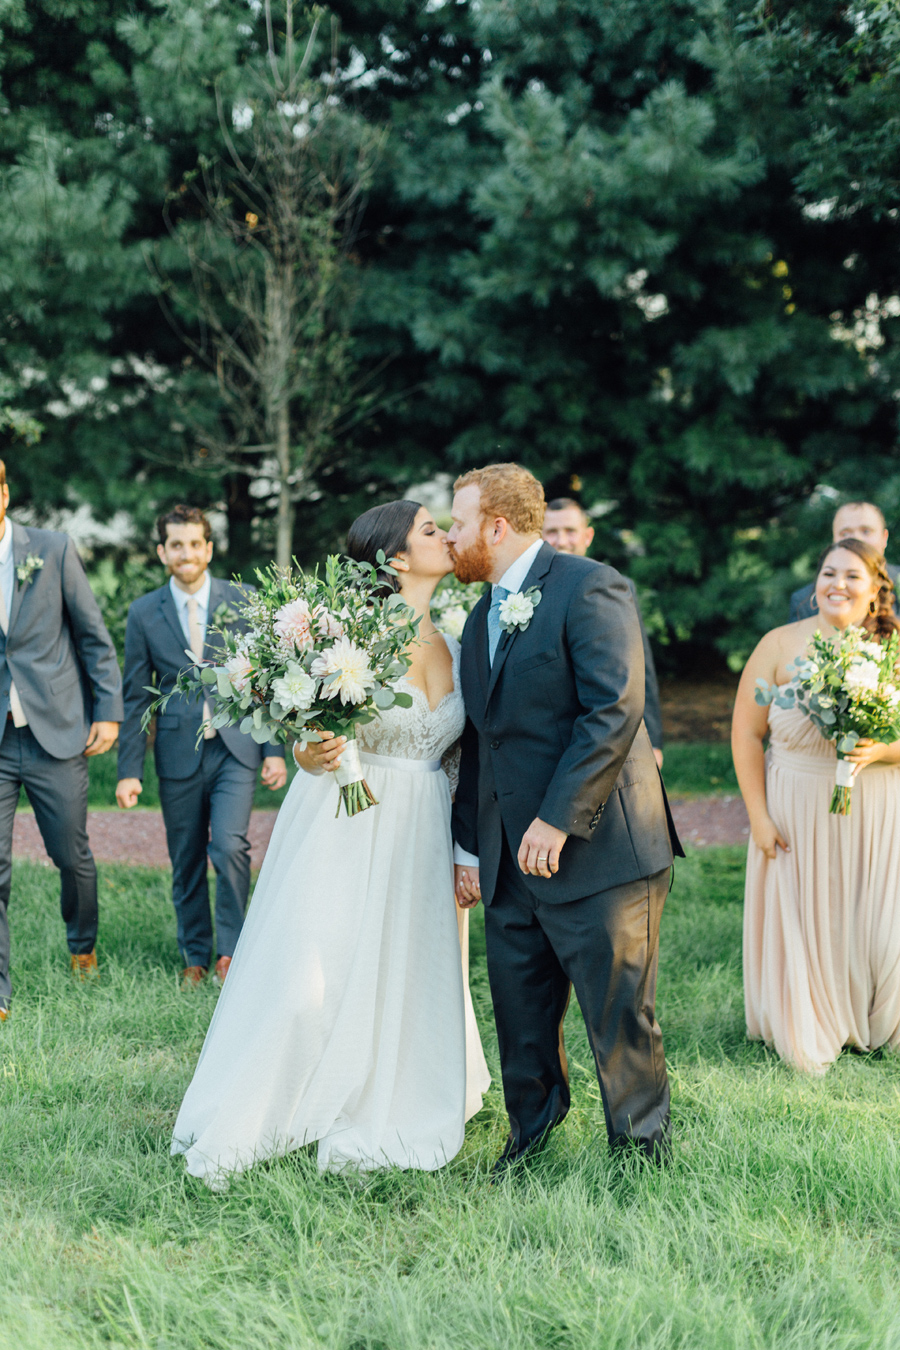 the-inn-at-leola-wedding-lancaster-pennsylvania-wedding-photographer-rebeka-viola-photograhy (72).jpg